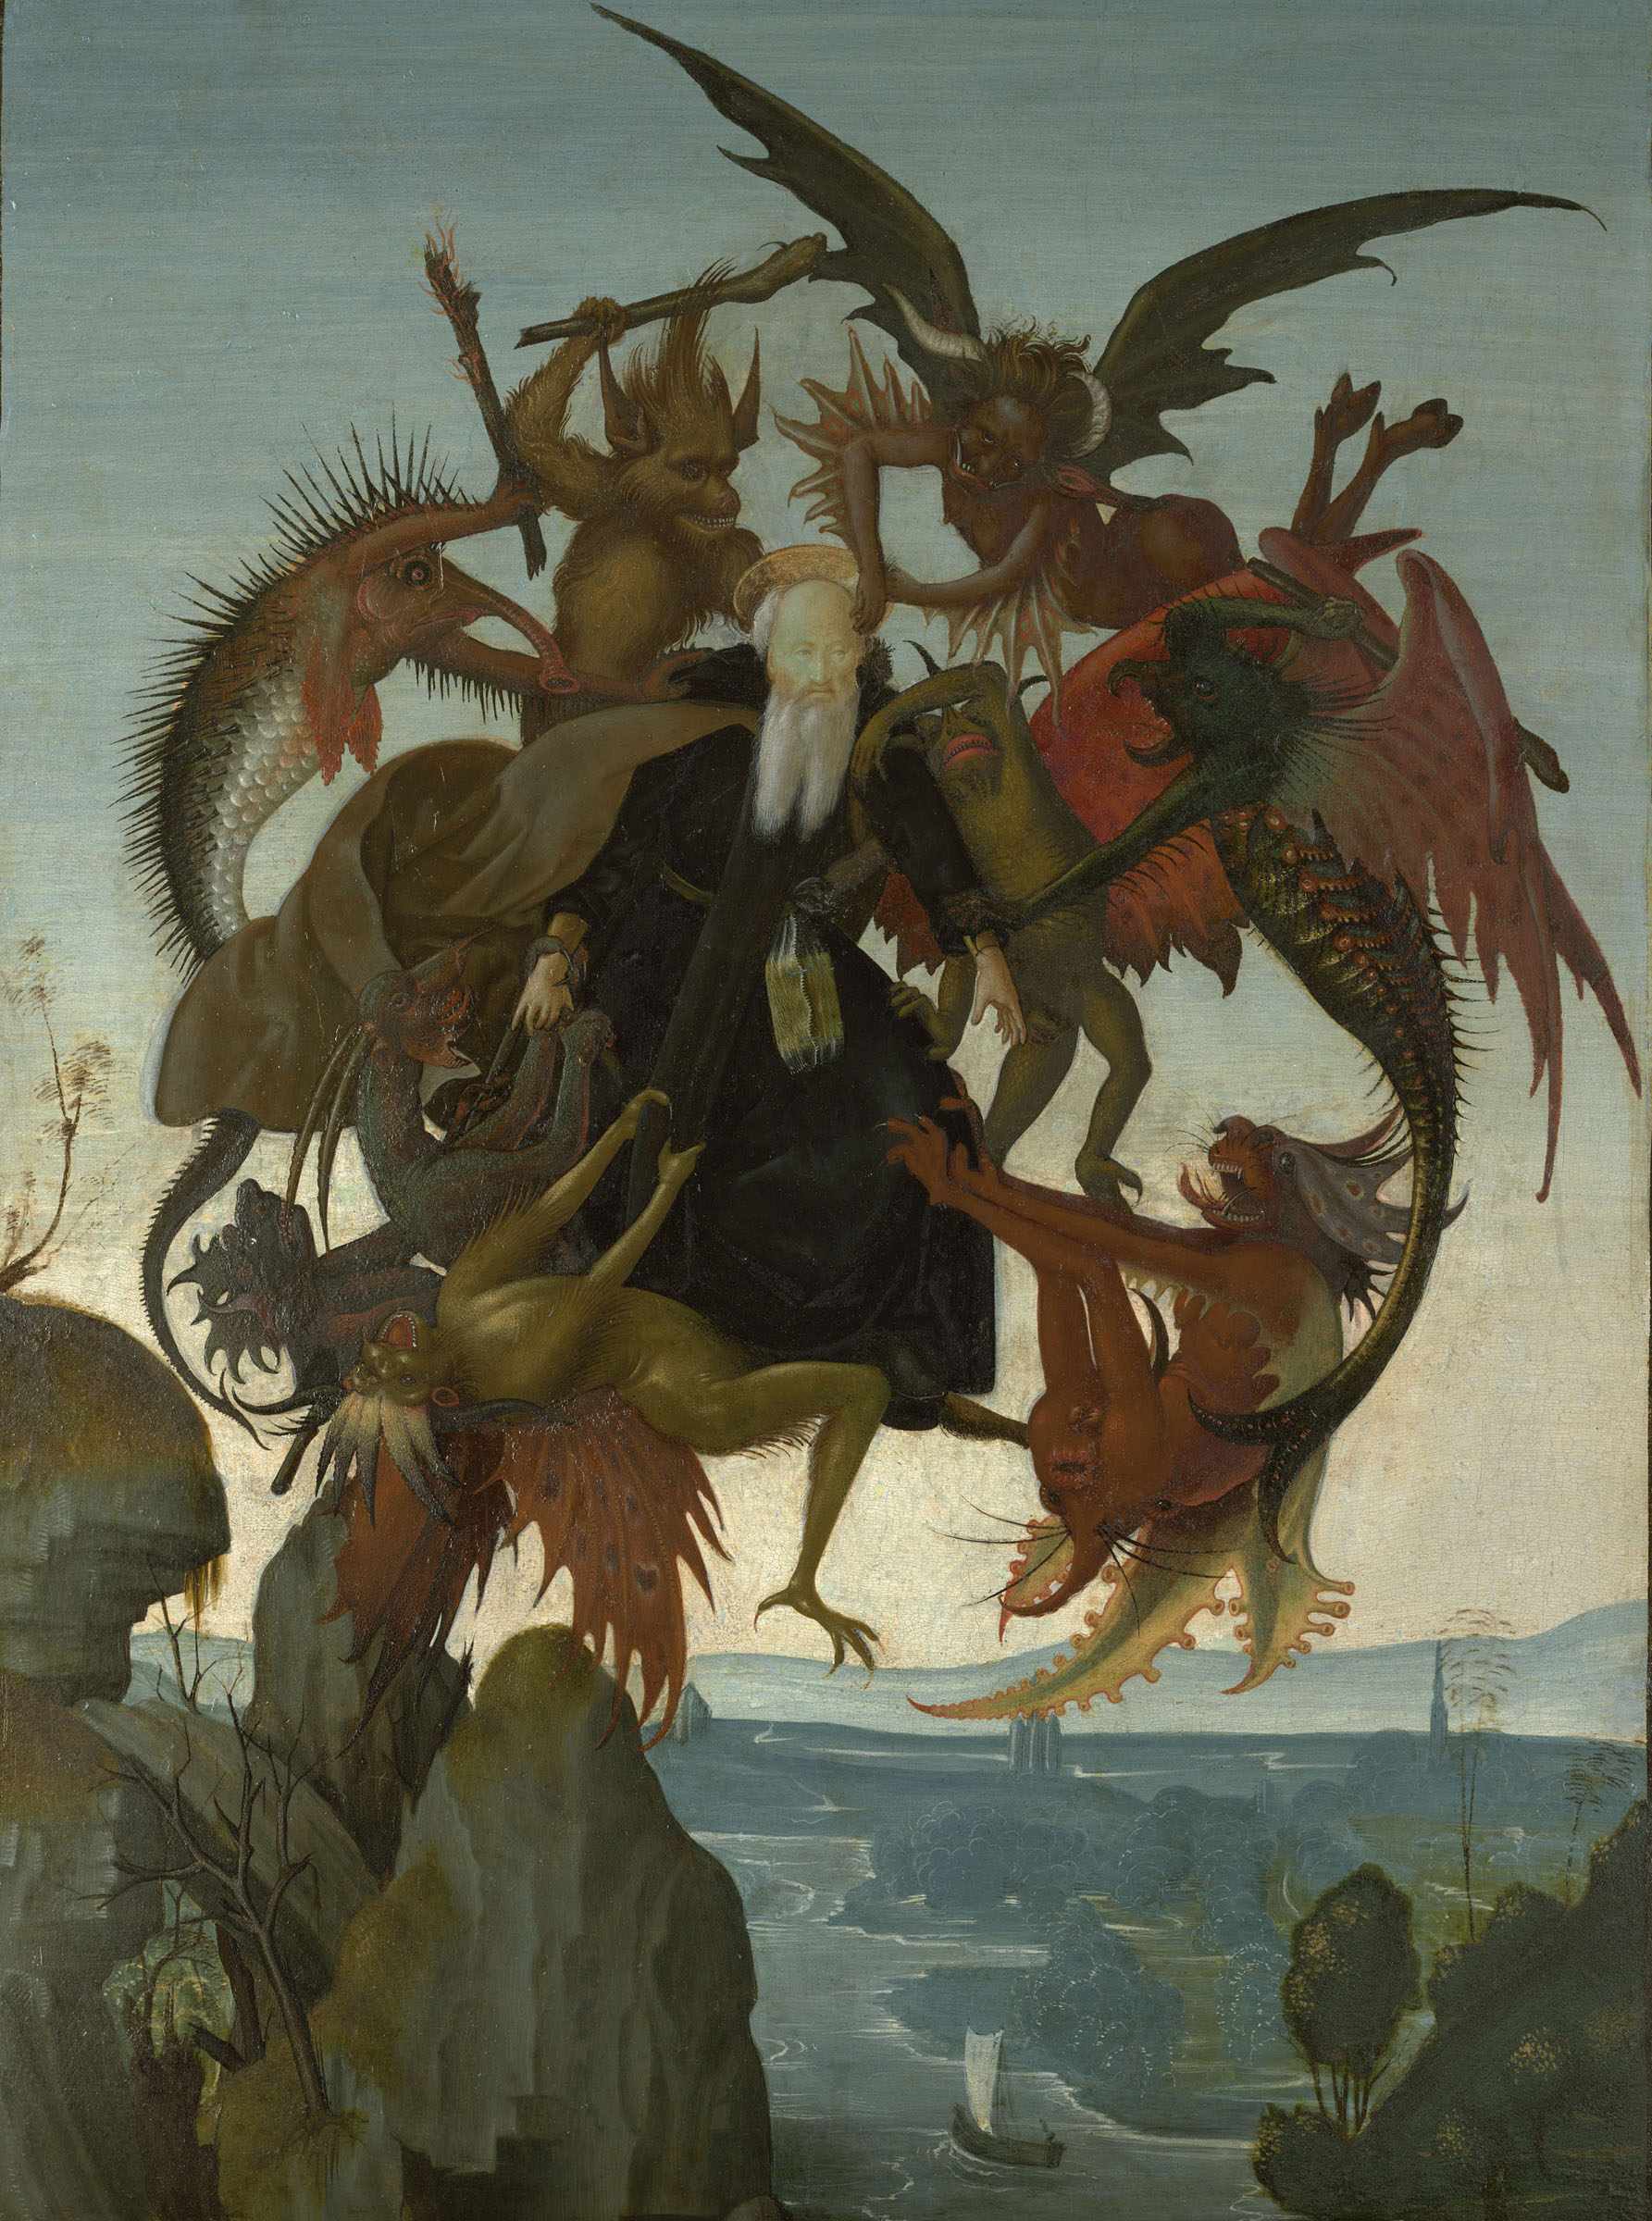 michelangelo_3_the_torment_of_saint_anthony.jpg